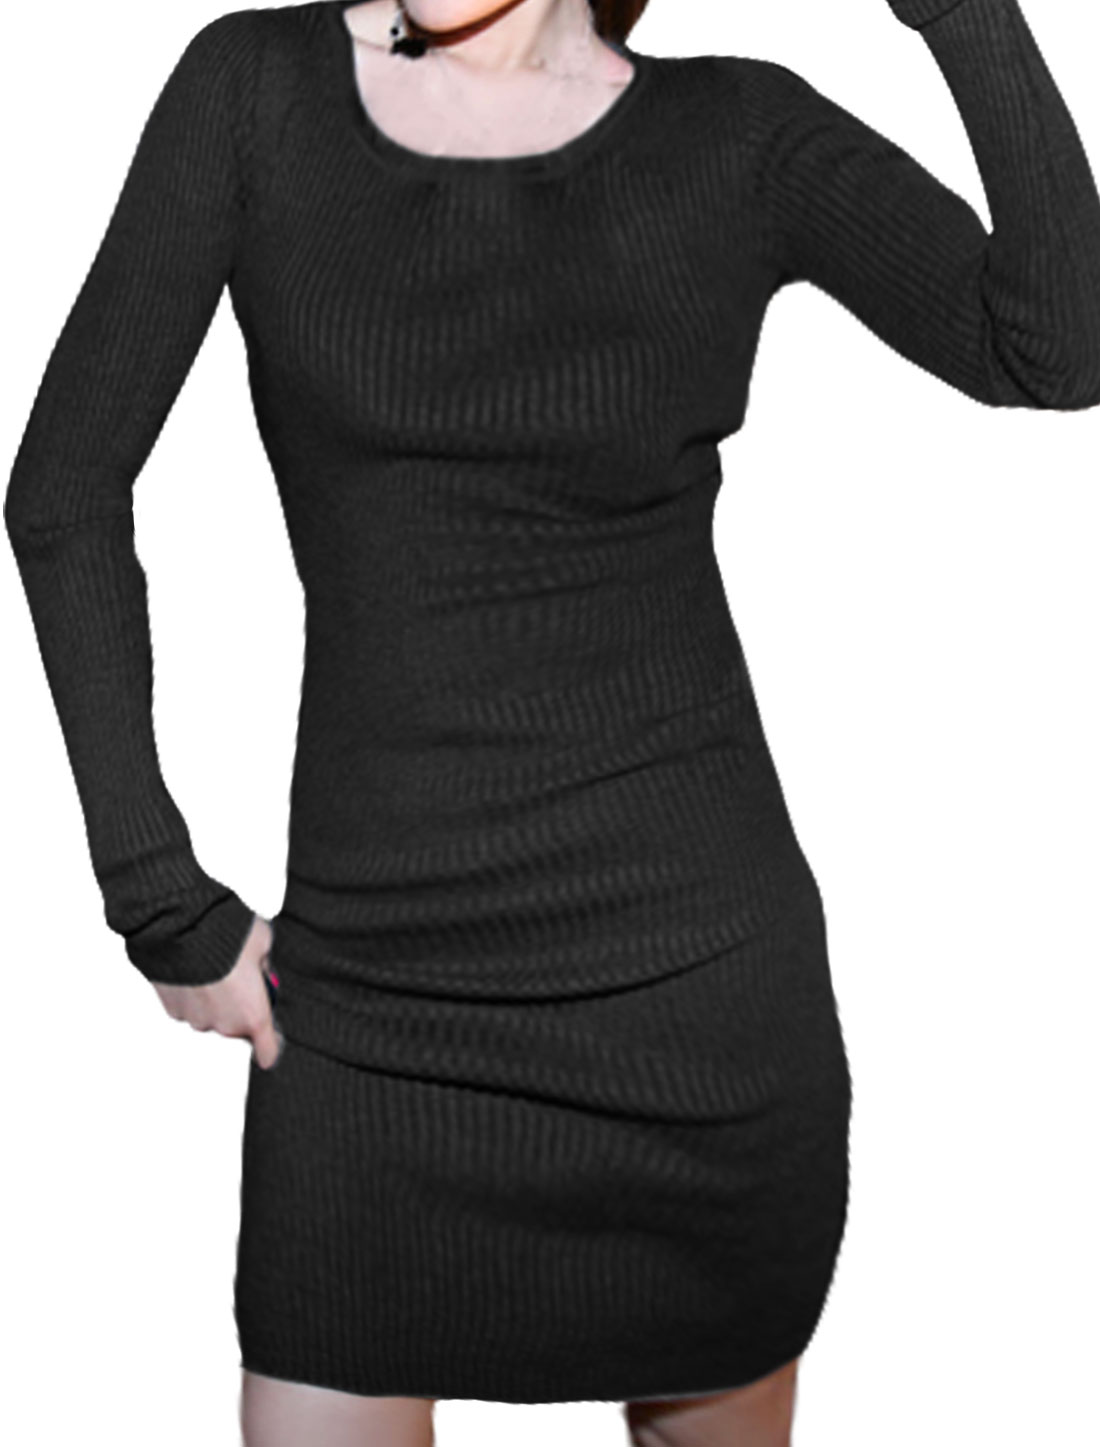 Women Round Neckline Long Sleeves Ribbing Slim Fit Dress Black XS